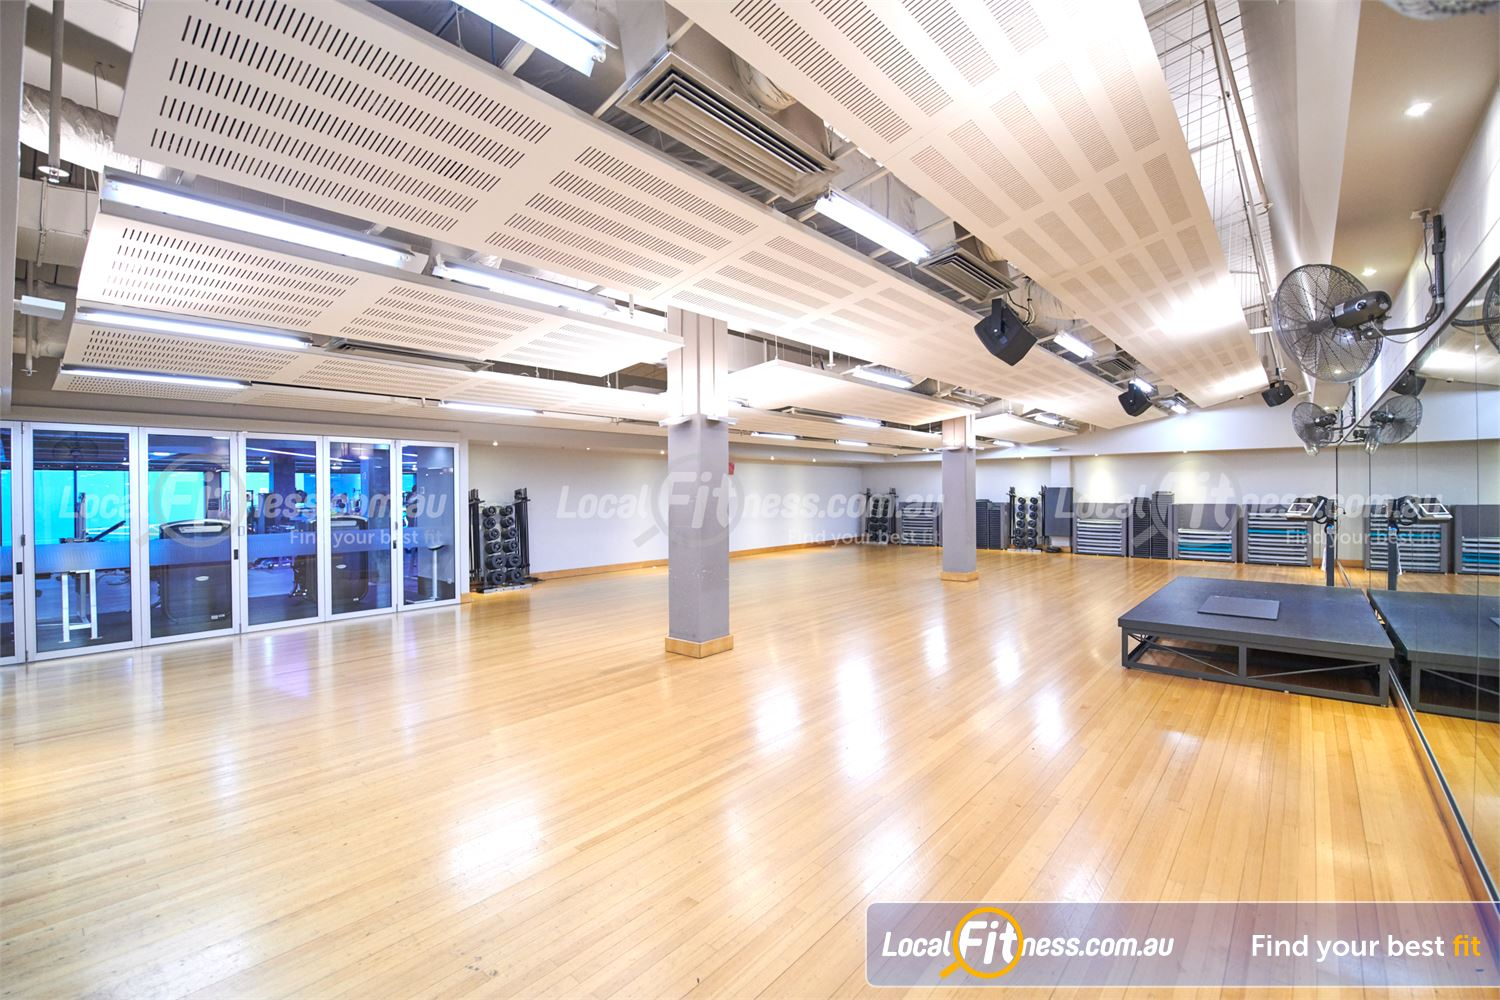 Fitness First Victoria Gardens Near Richmond North Over 55 classes per week inc. Les Mills, HIIT, boxing and more.